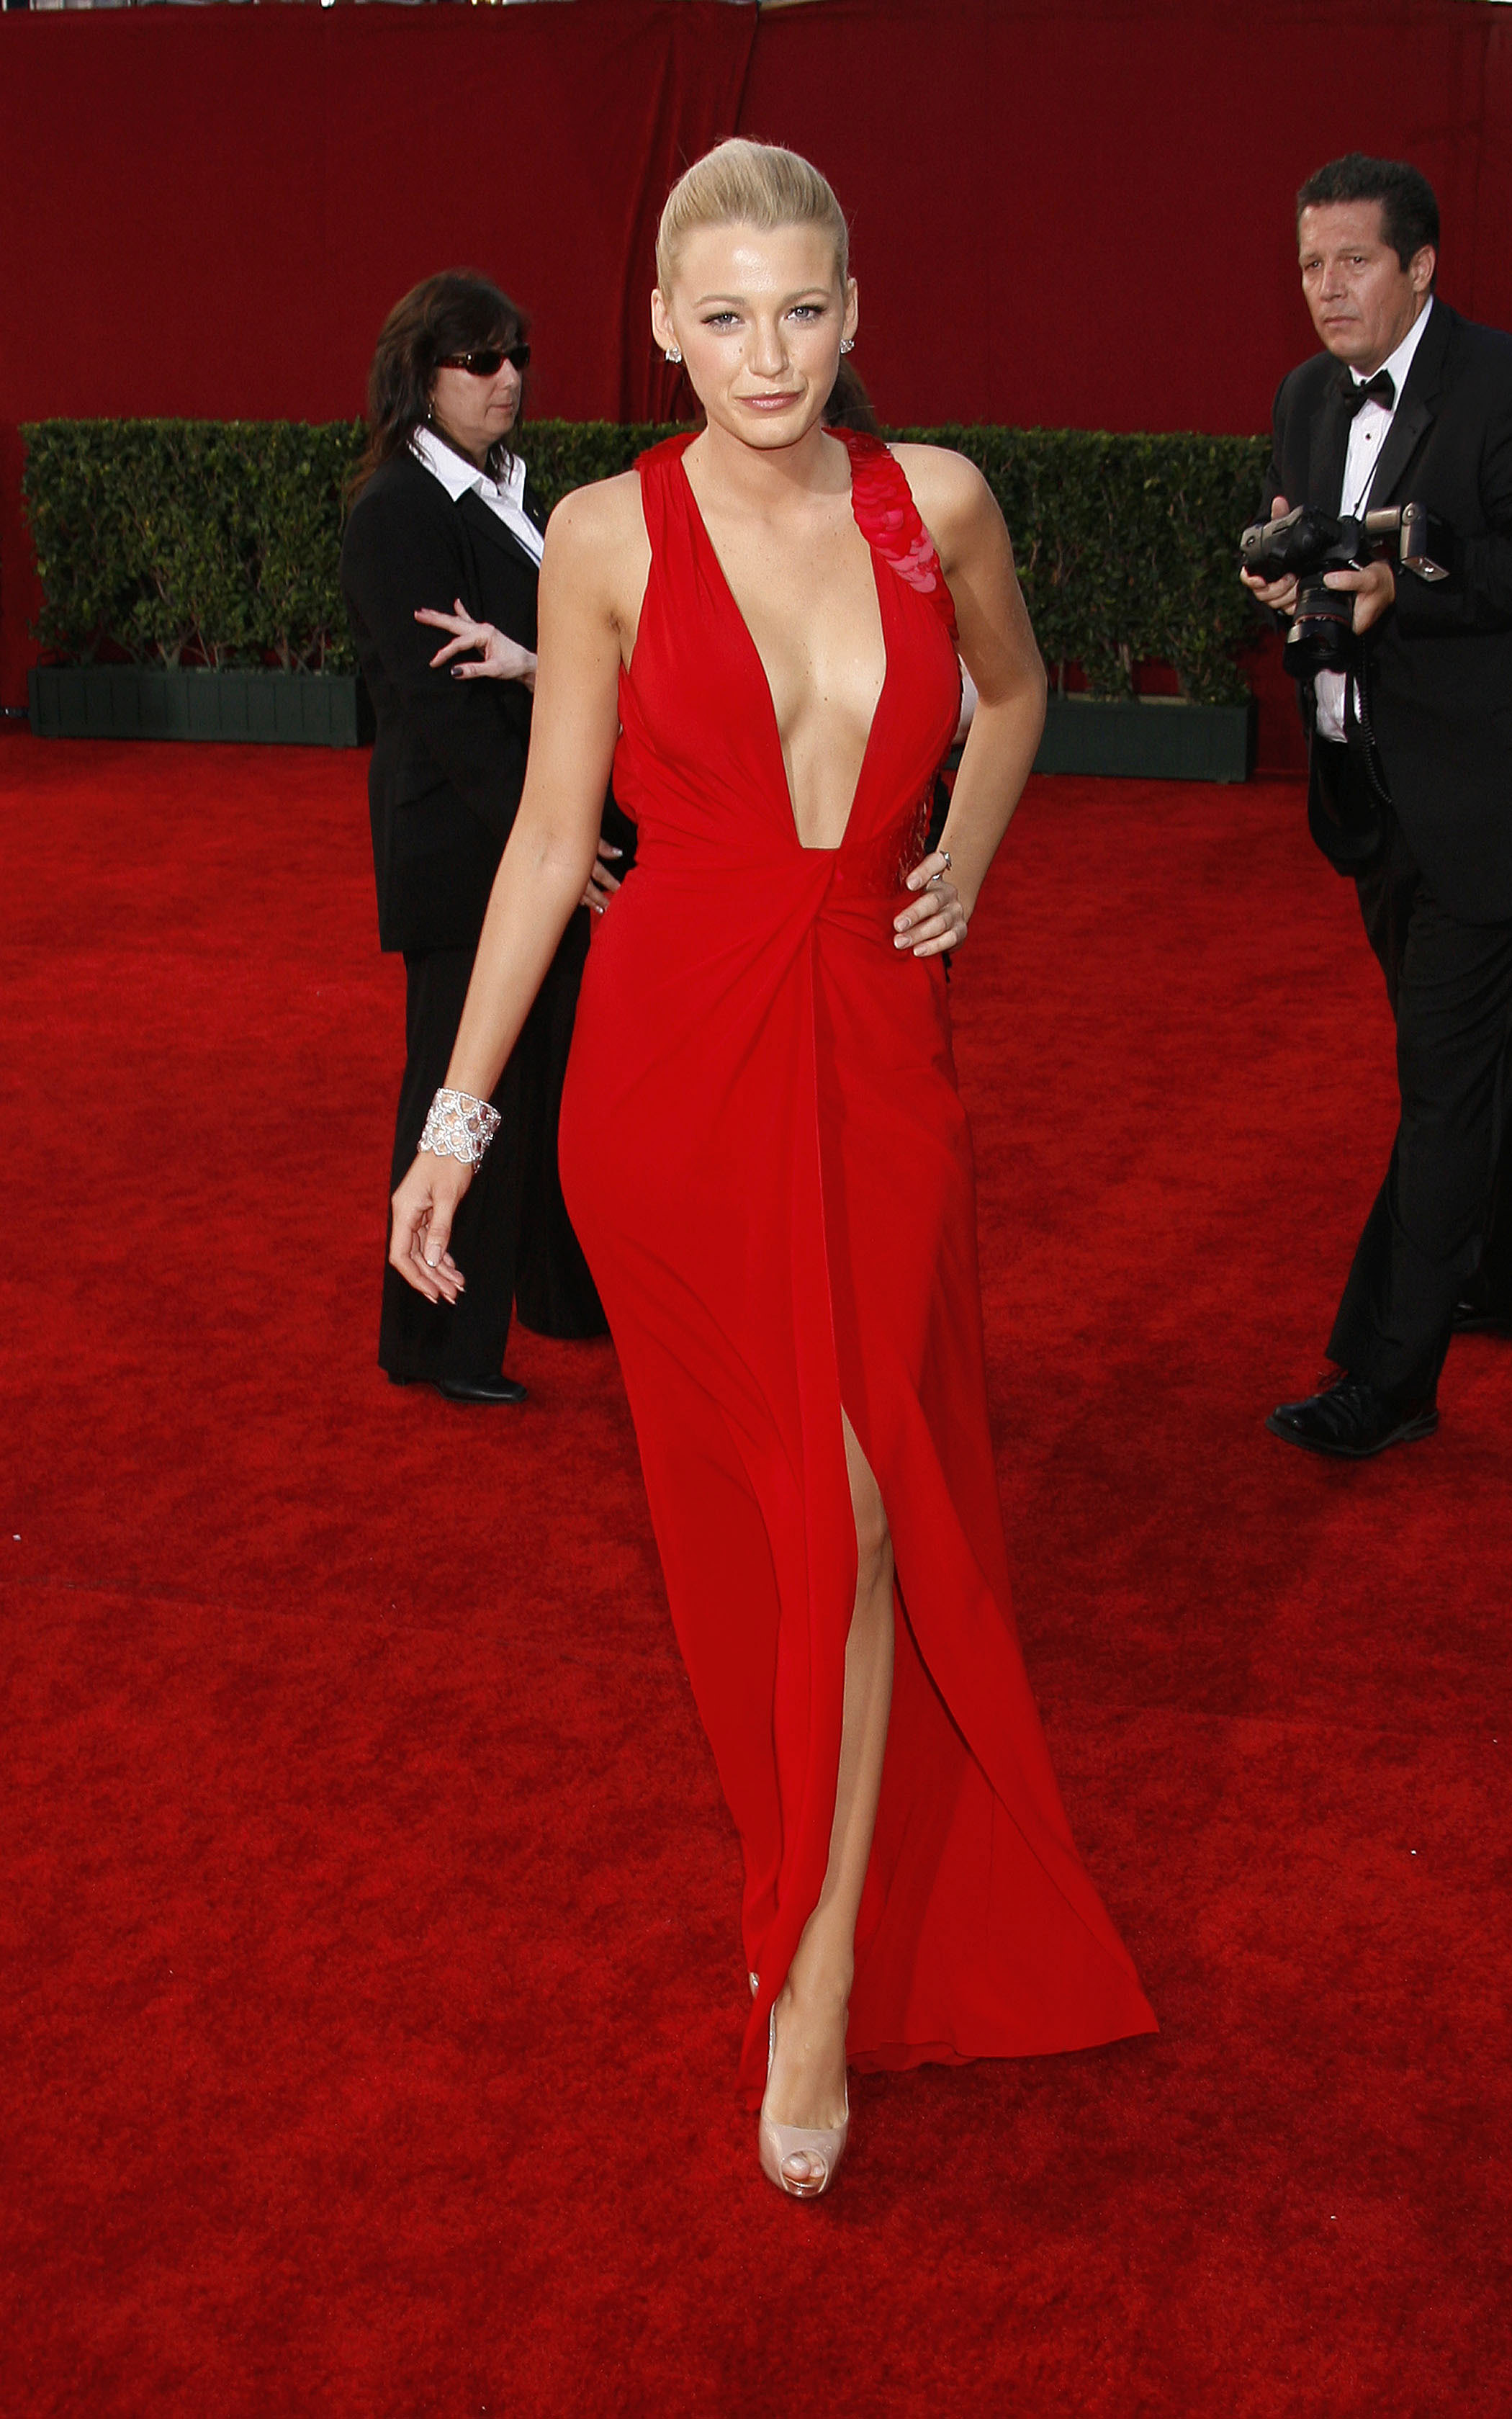 Best Red Dresses in Fashion History - Iconic Red Dresses